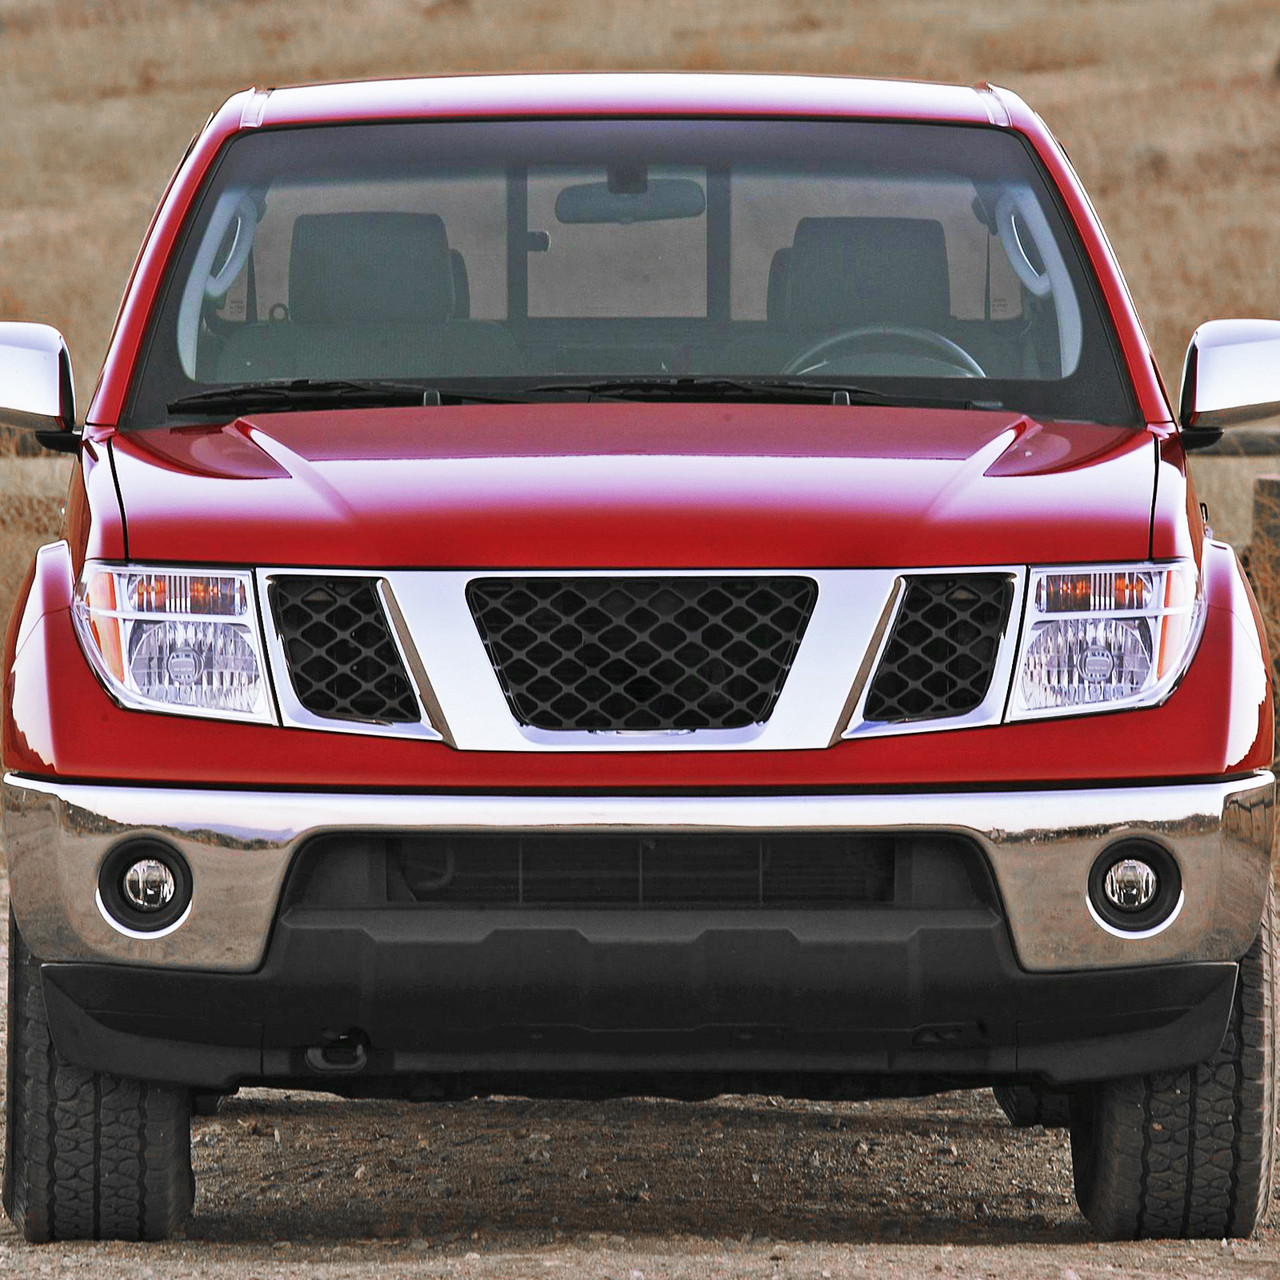 2005 2012 Nissan Pathfinder Frontier H11 Fog Lights Kit W Switch Wiring Harness Chrome Housing Clear Lens Spec D Tuning